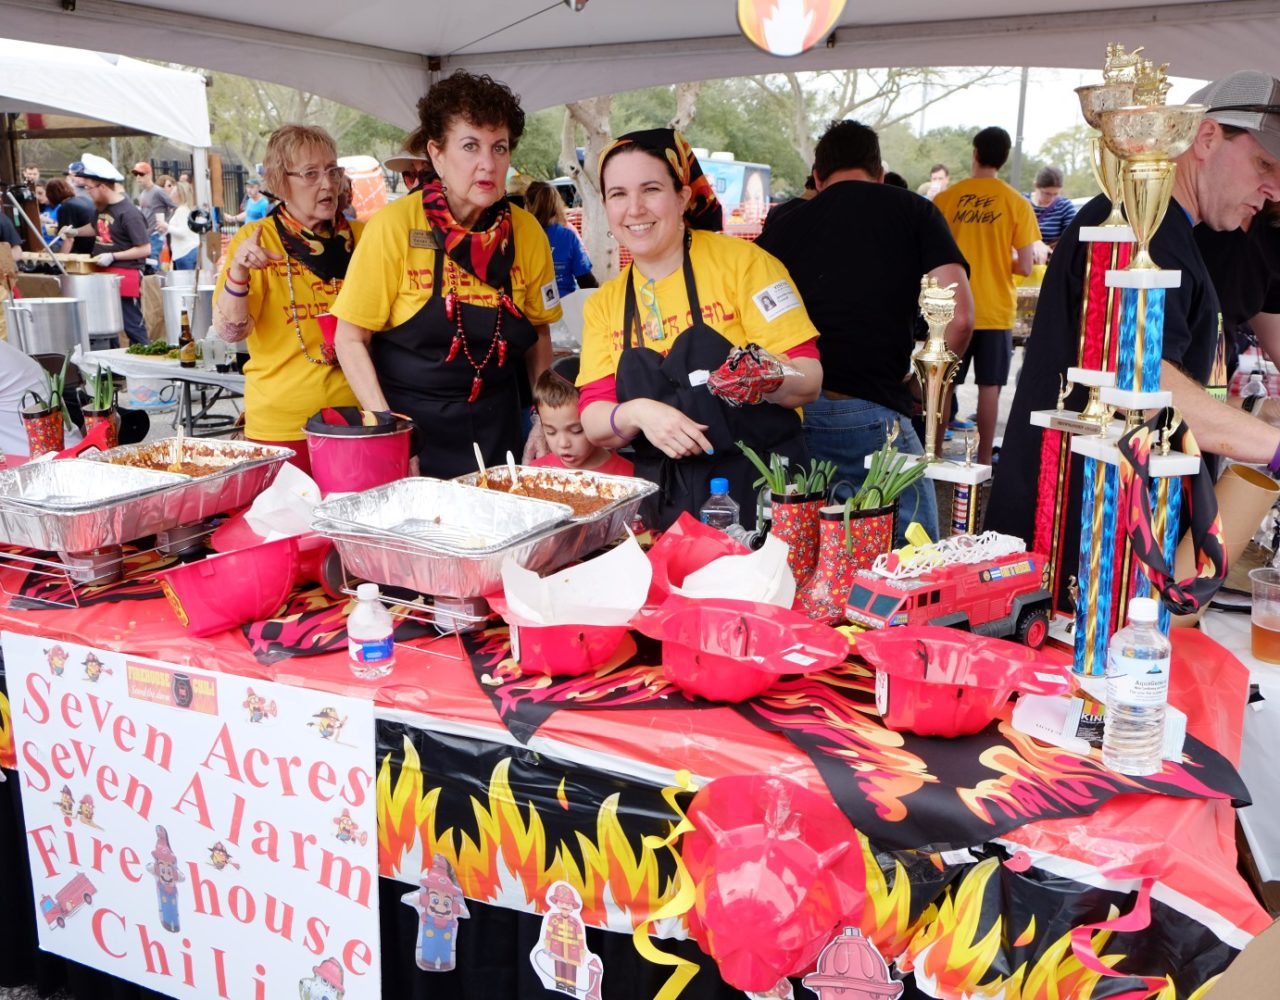 Annual Houston Kosher Chili Cookoff Marks Another Successful 7th Year Celebration